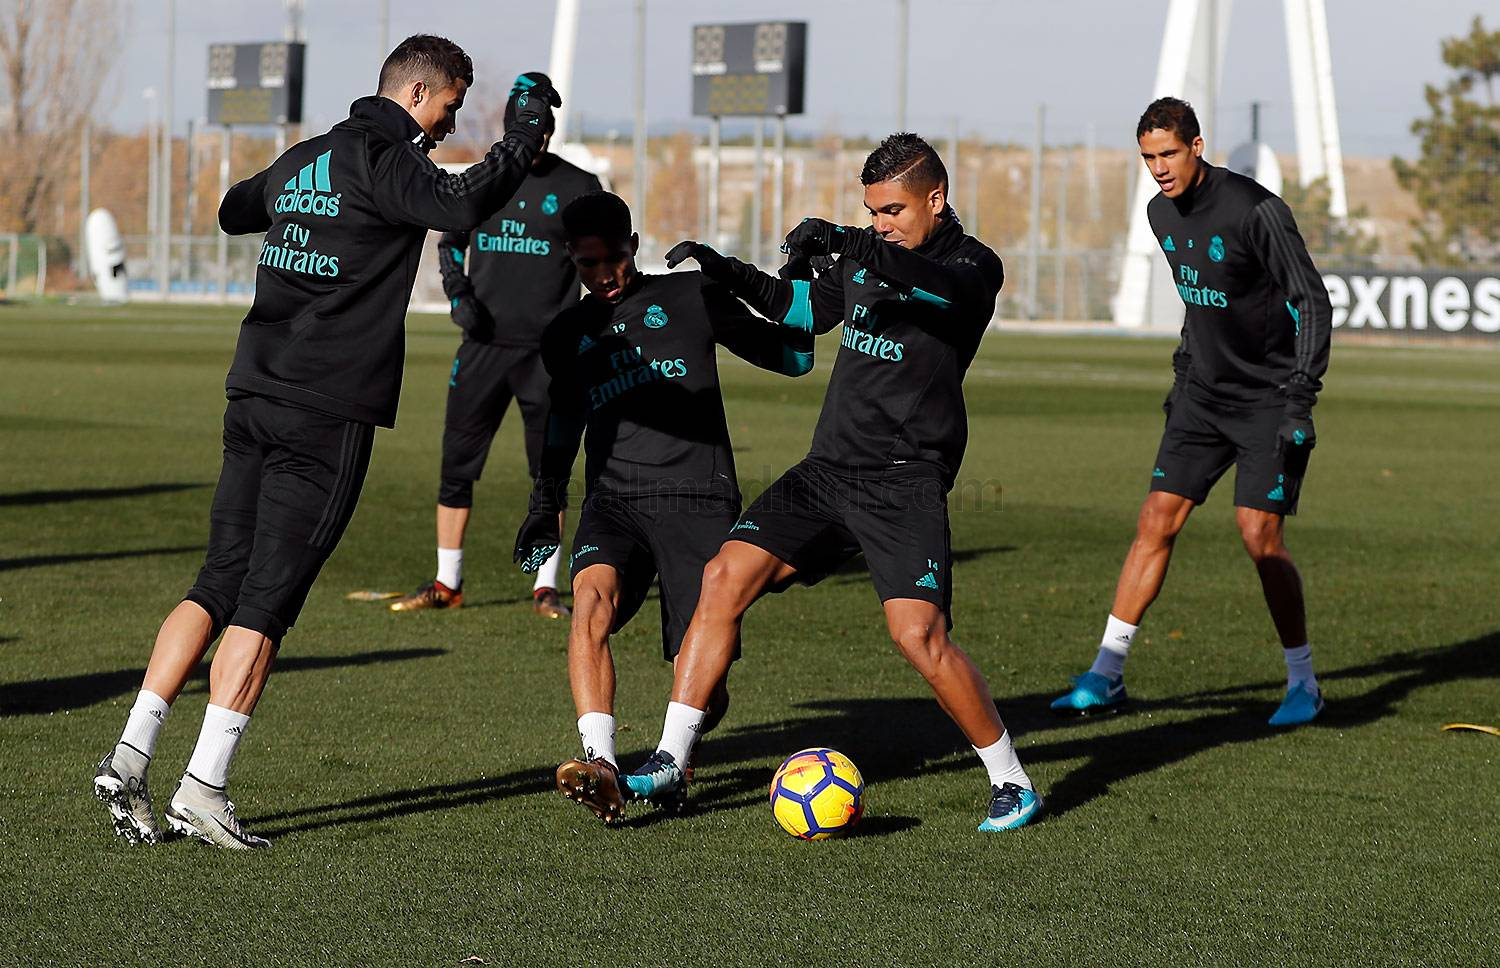 Real Madrid - Entrenamiento del Real Madrid - 01-12-2017